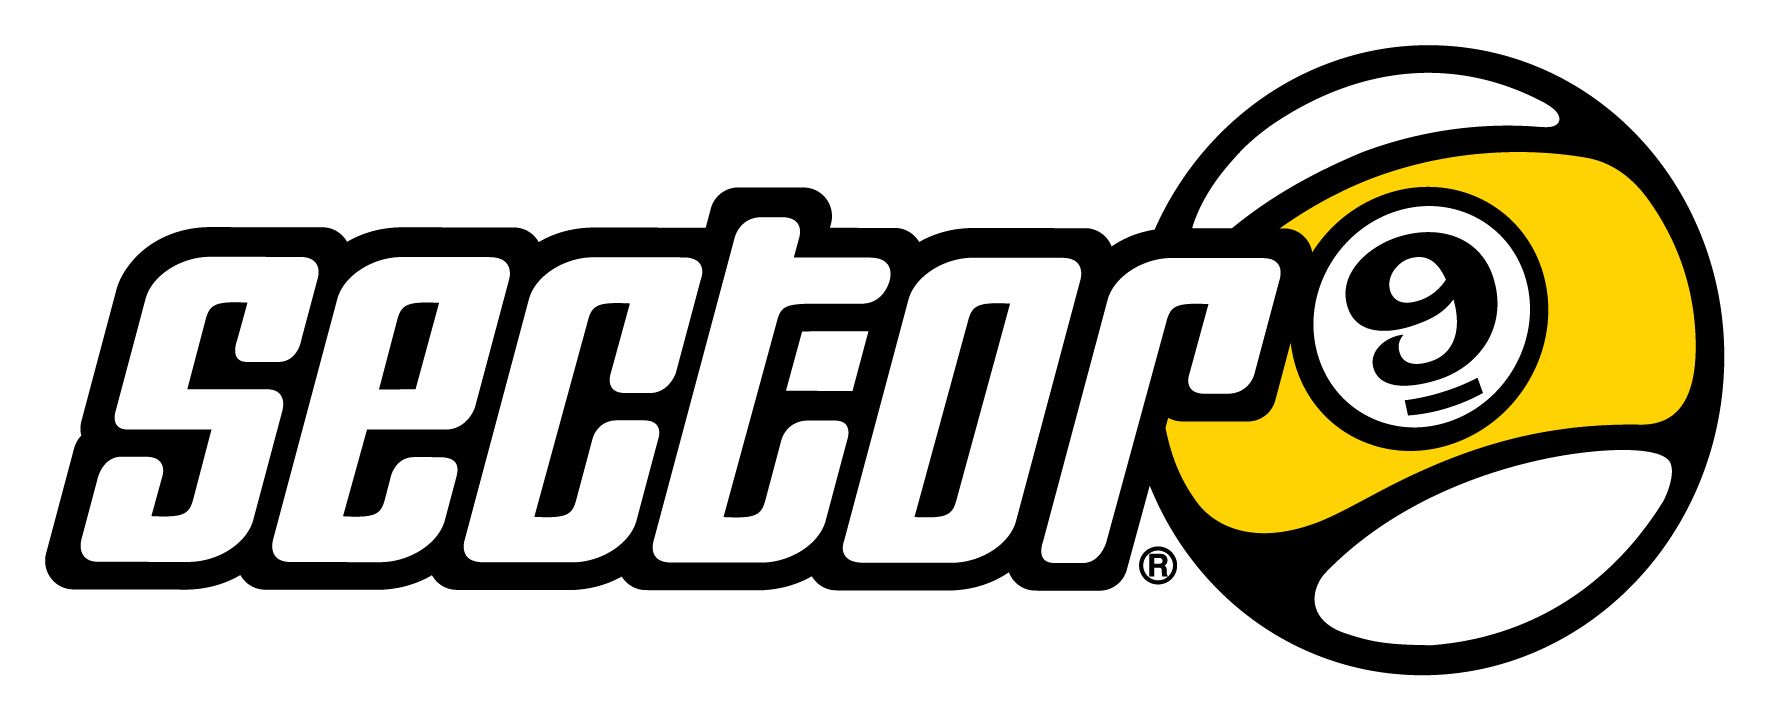 Sector 9 Decals Related Keywords & Suggestions - Sector 9 Decals ...